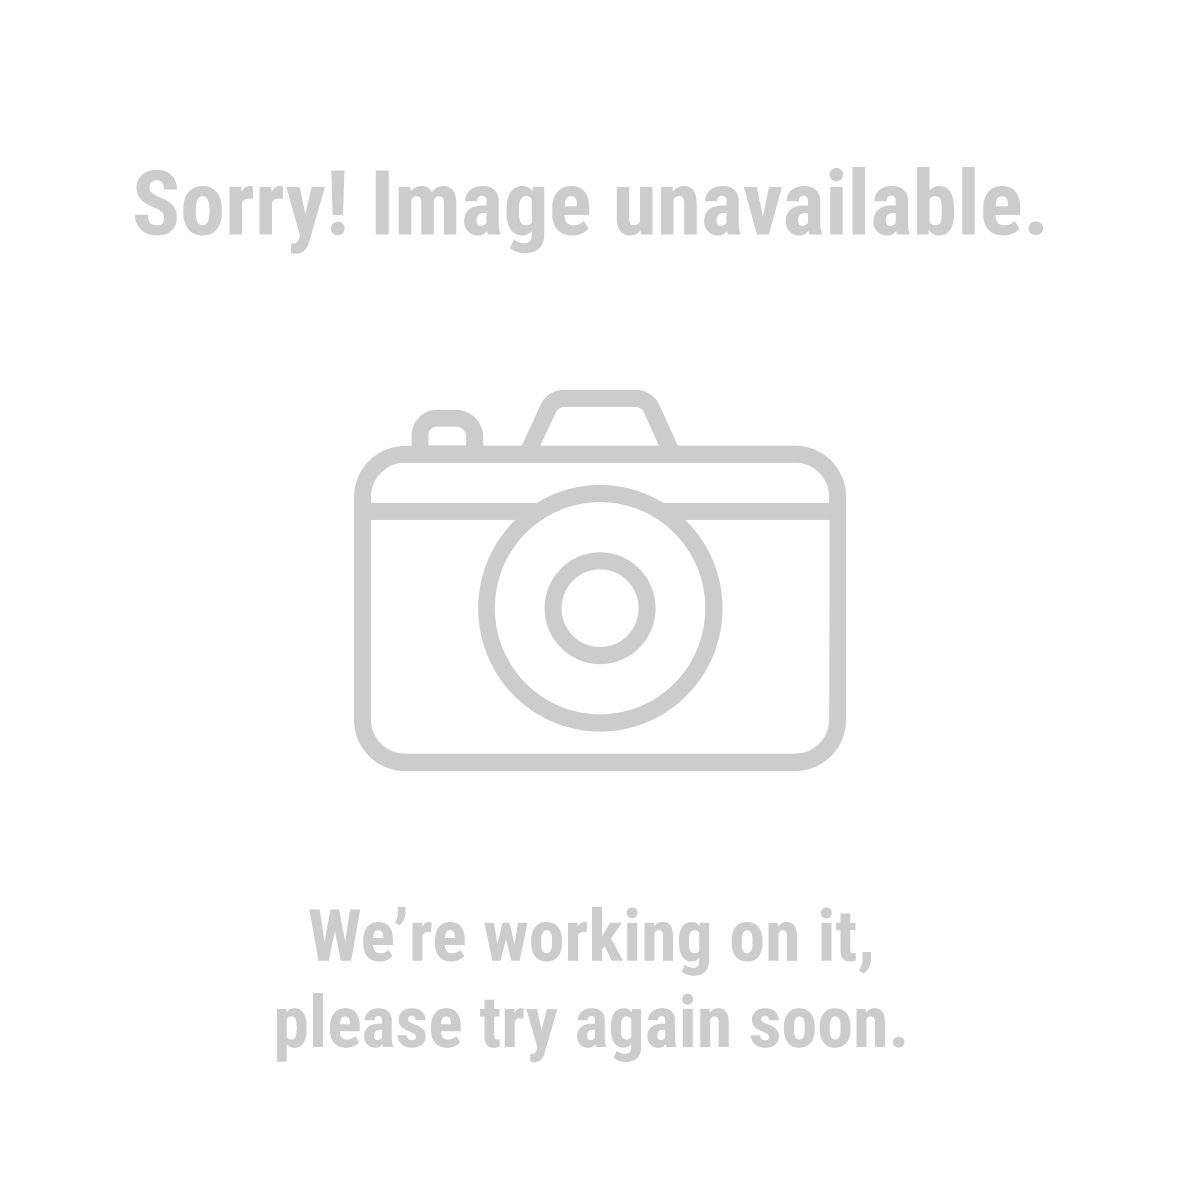 Harbor Freight Wet Dry Vac Diydry Co